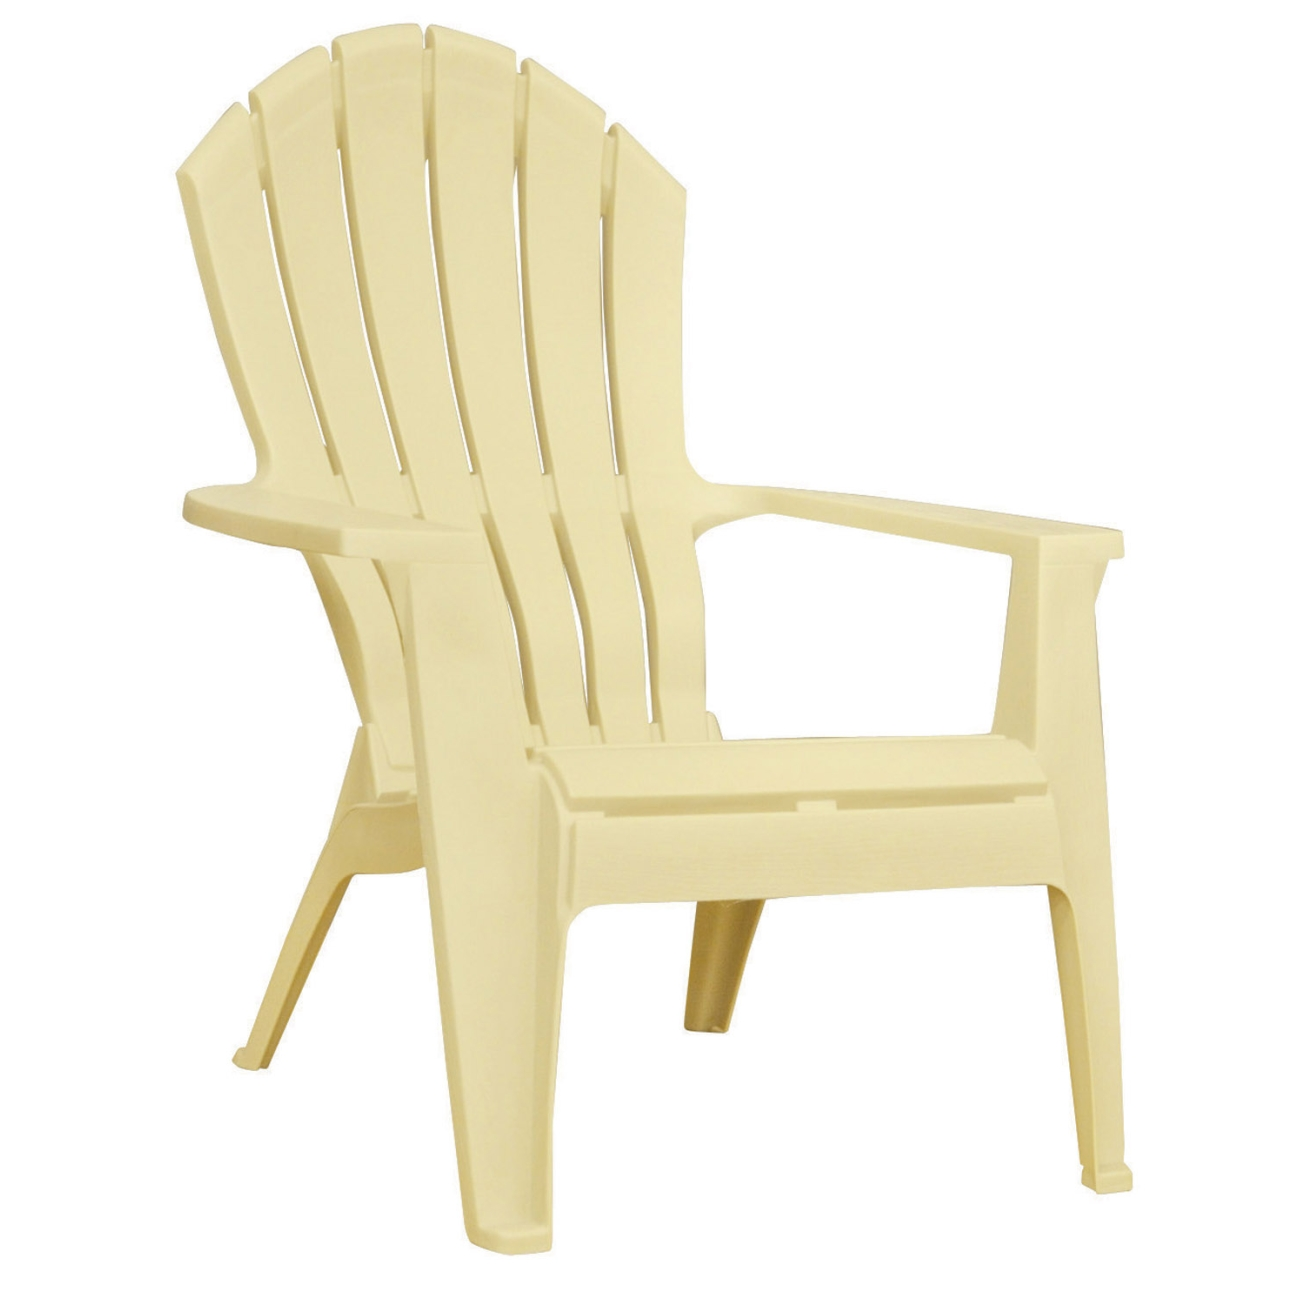 Why White Plastic Adirondack Chairs Are Better Than Wooden